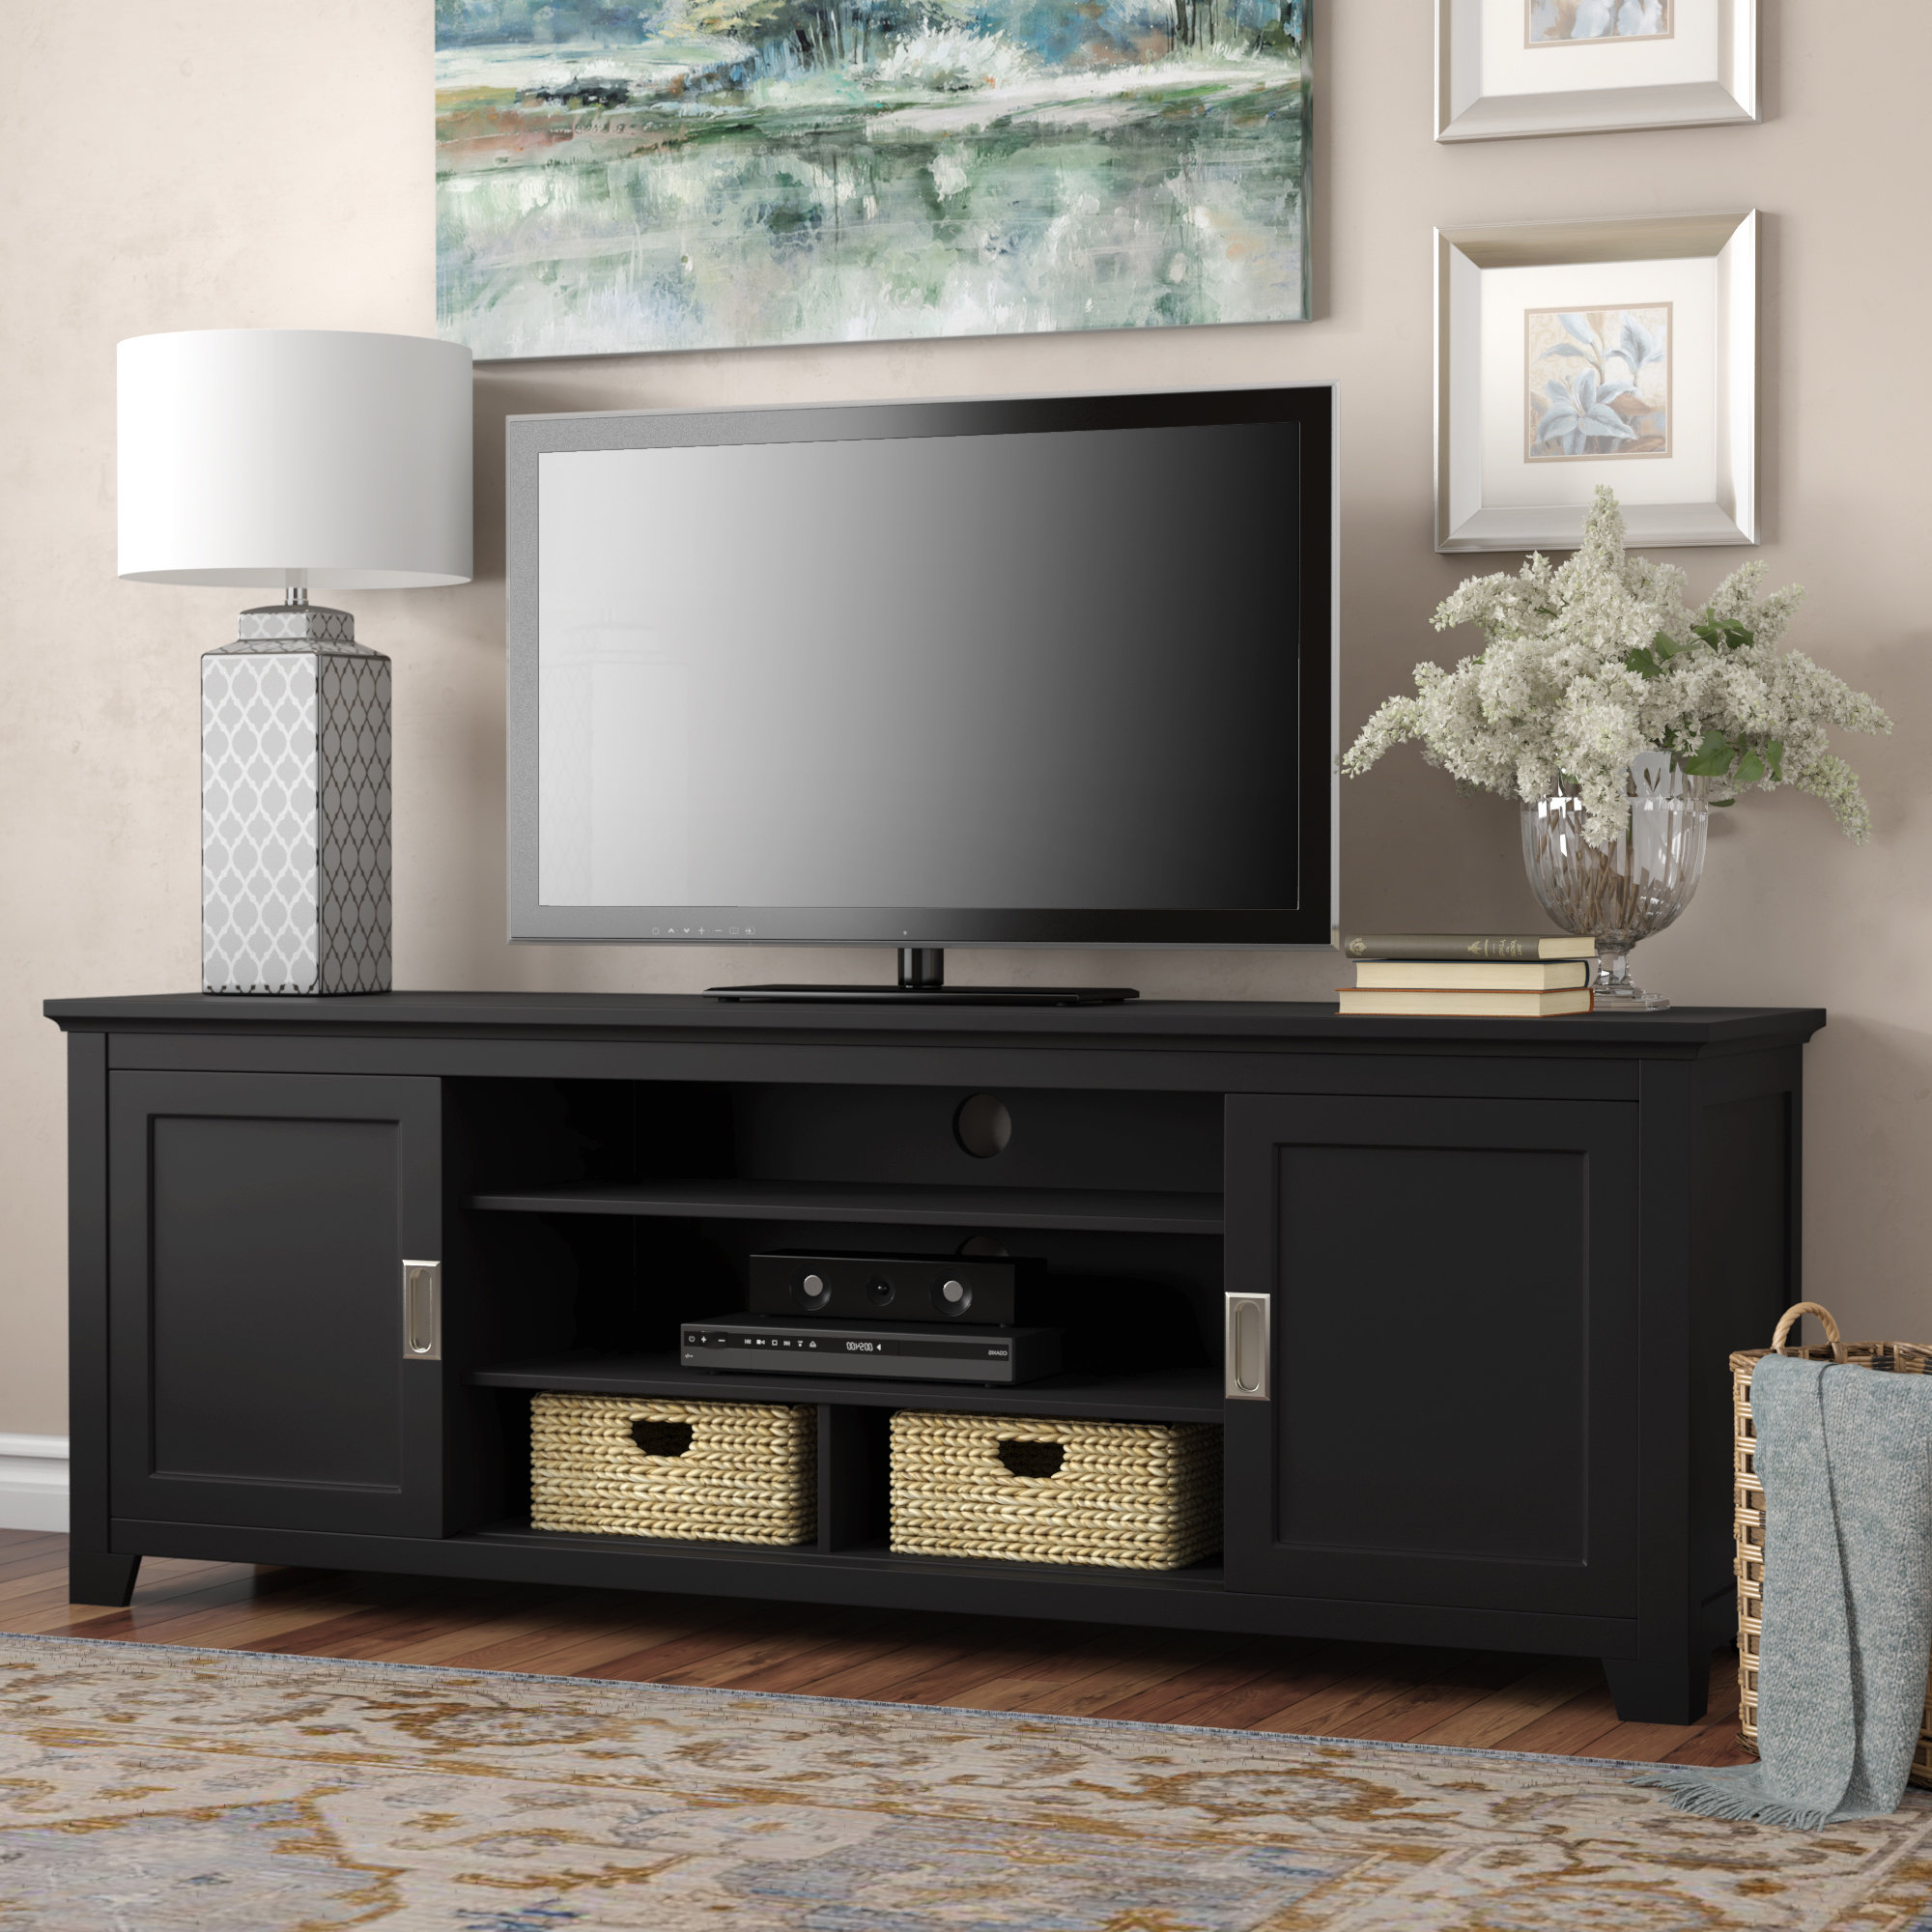 Wayfair Inside Best And Newest Tv Stands For 70 Flat Screen (View 6 of 20)